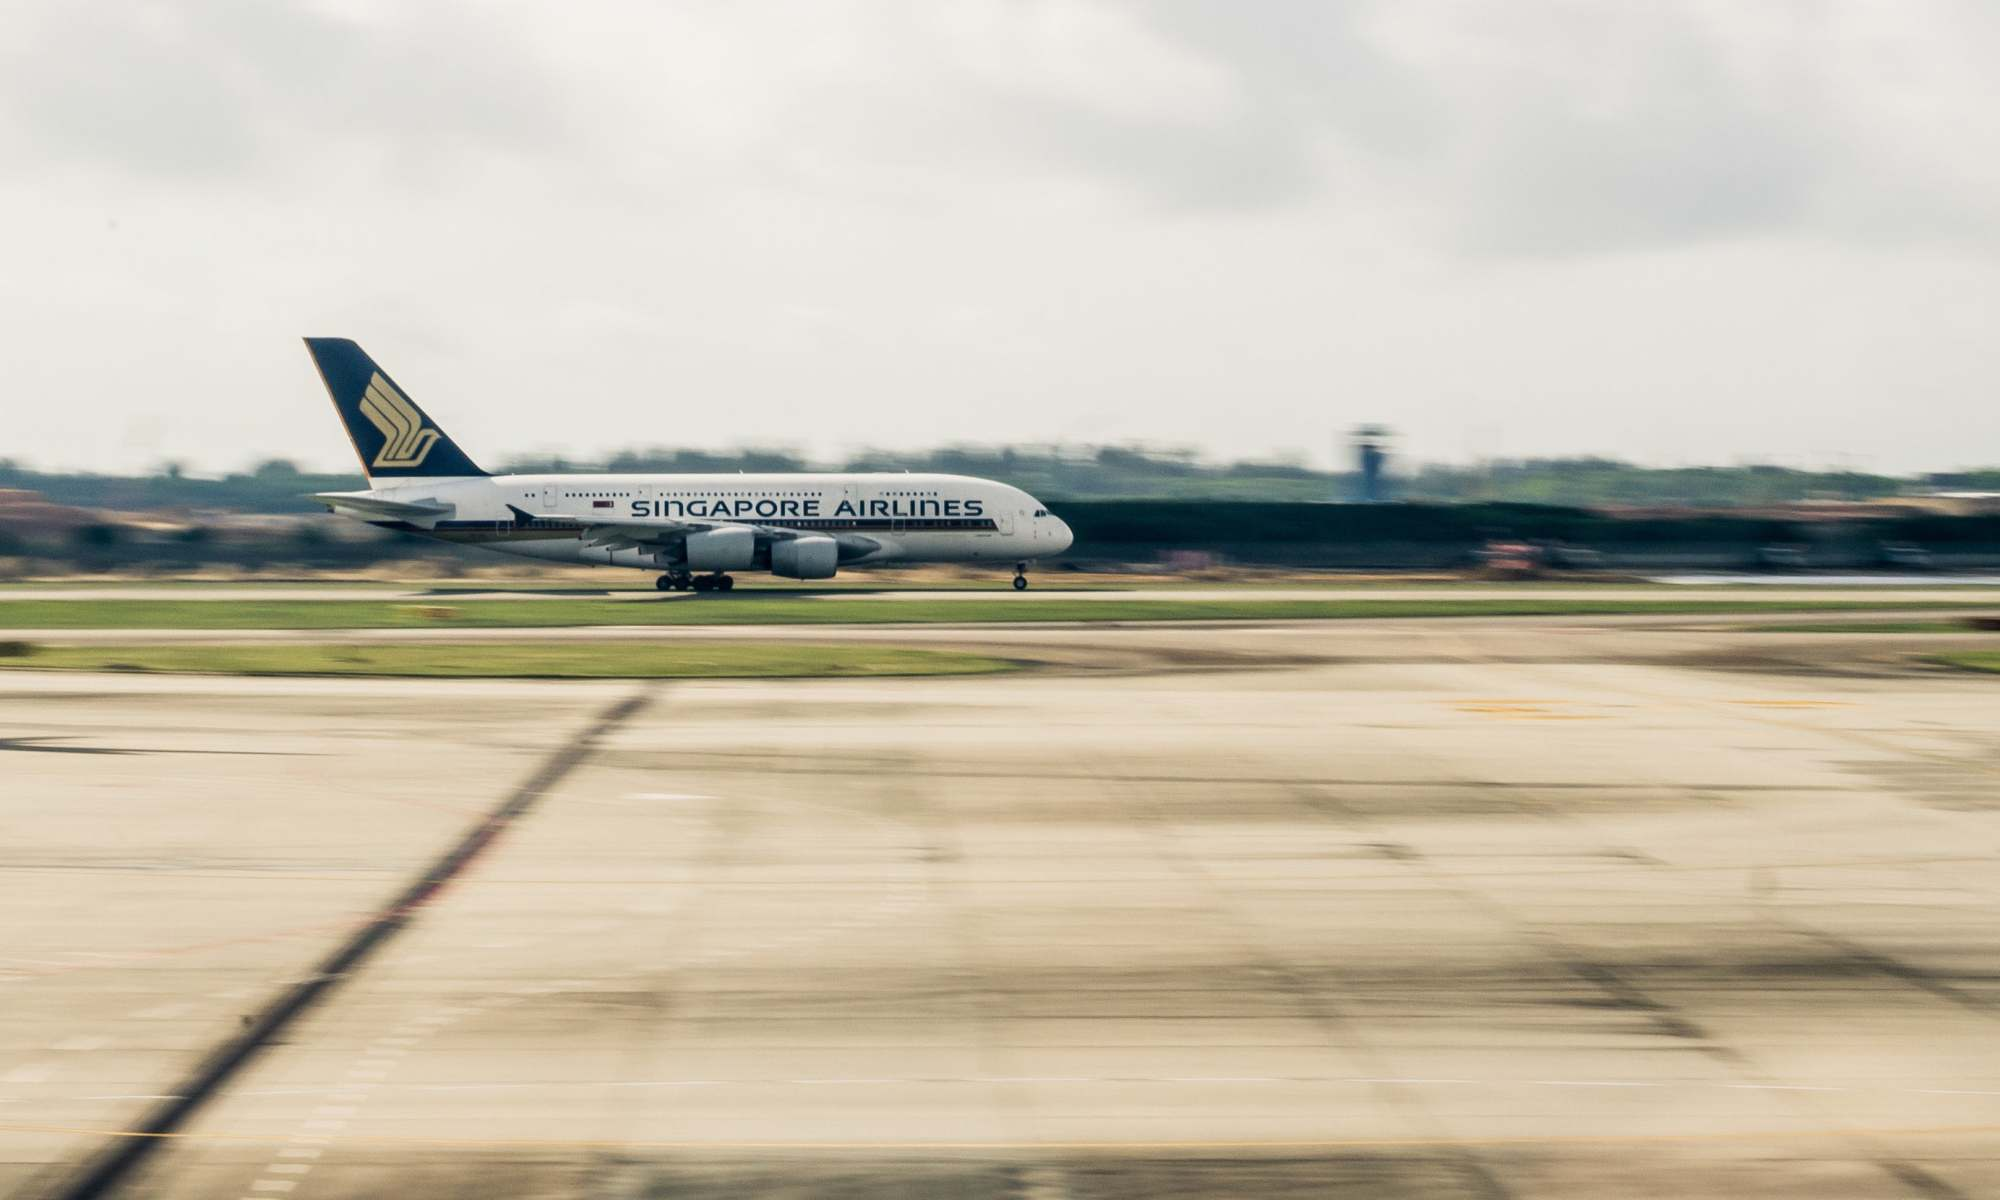 Singapore Airlines Fleet: November 2019 – Mainly Miles